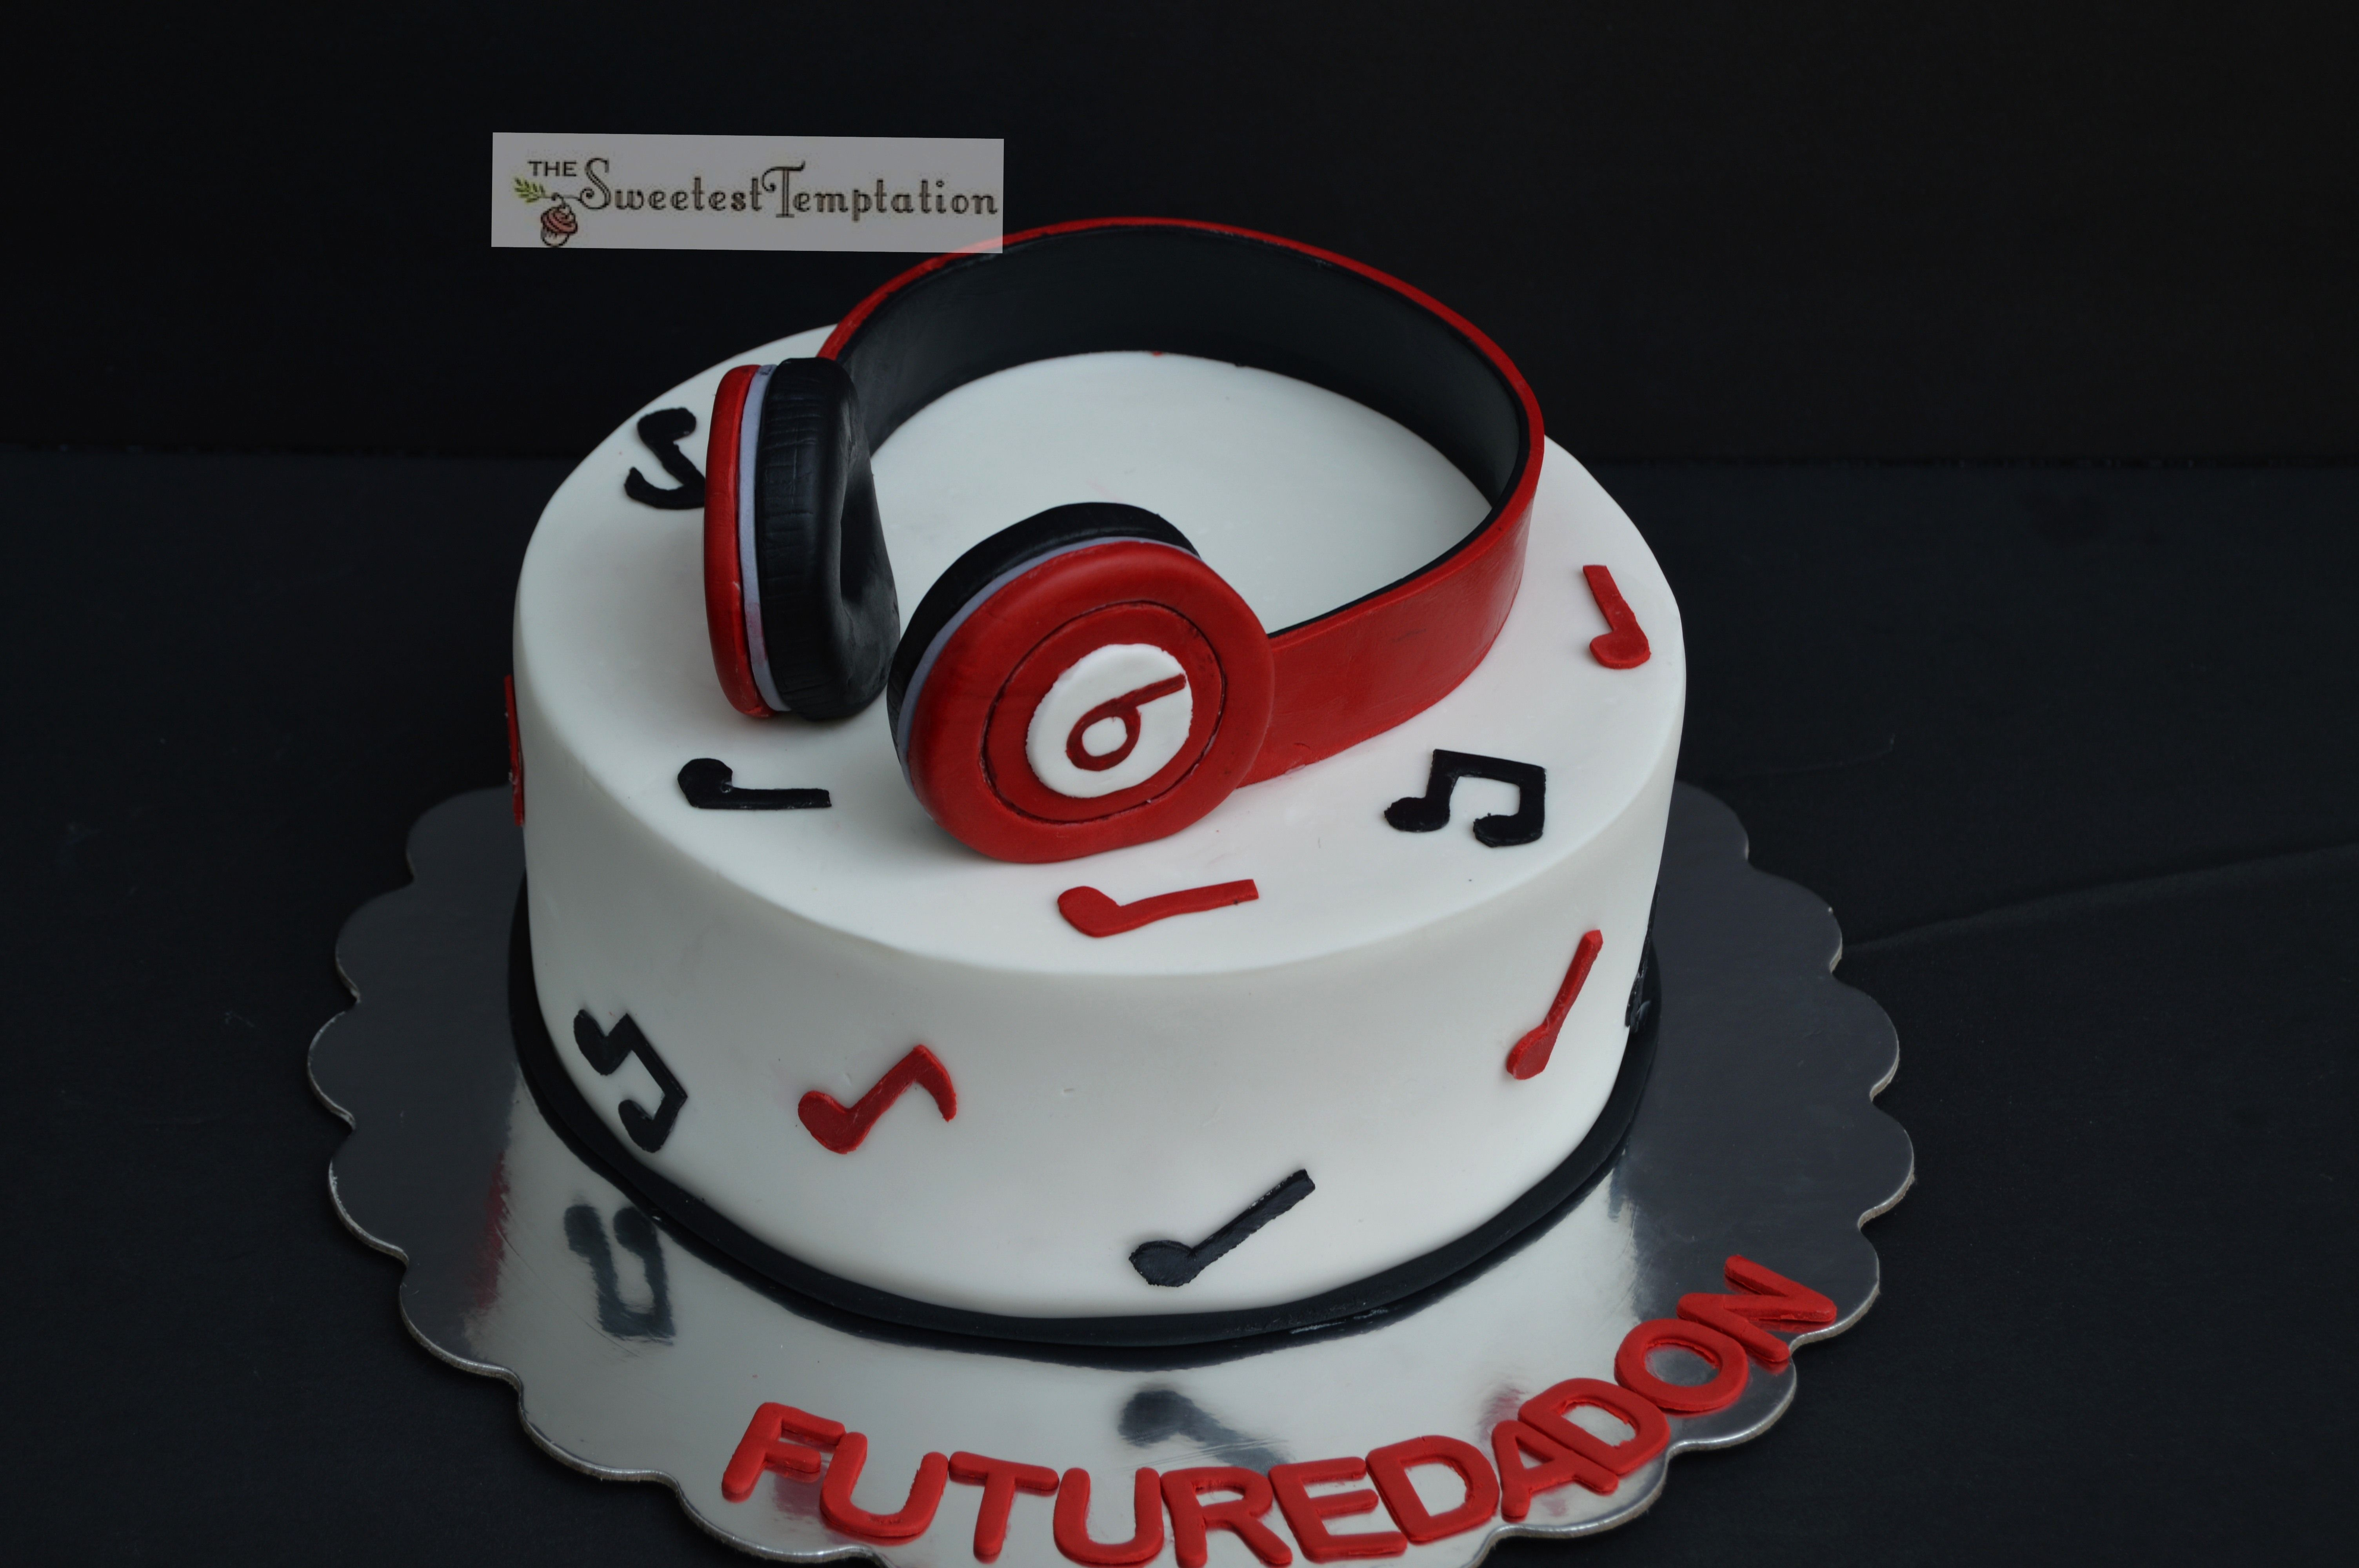 Beats By Dre Headphones Cake Cake Ideas Pinterest